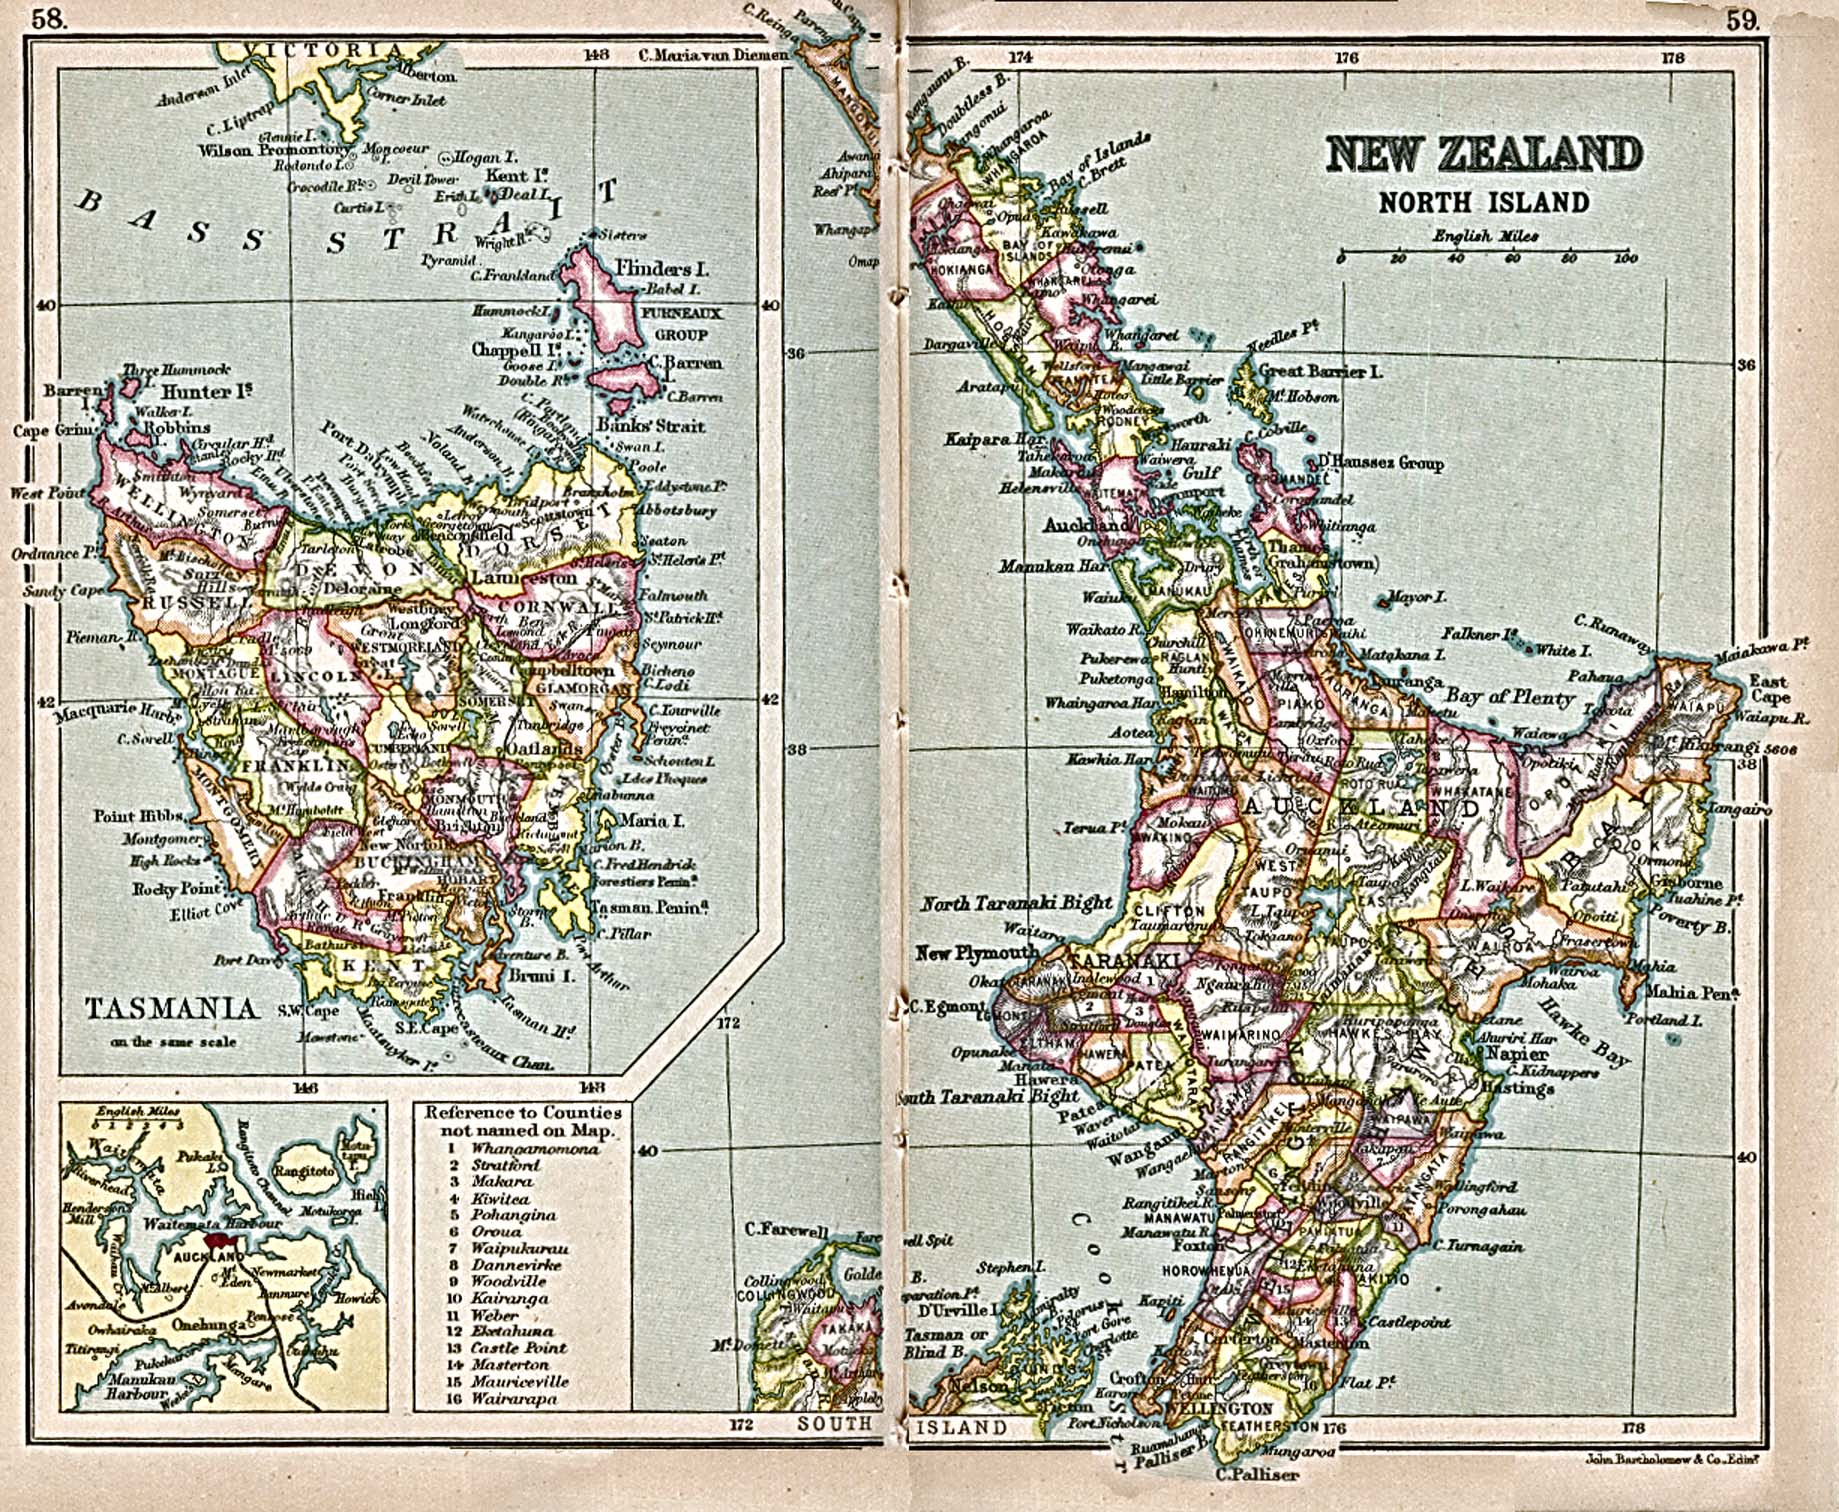 Australia and the pacific historical maps perry castaeda map new zealand north island 1913 gumiabroncs Choice Image